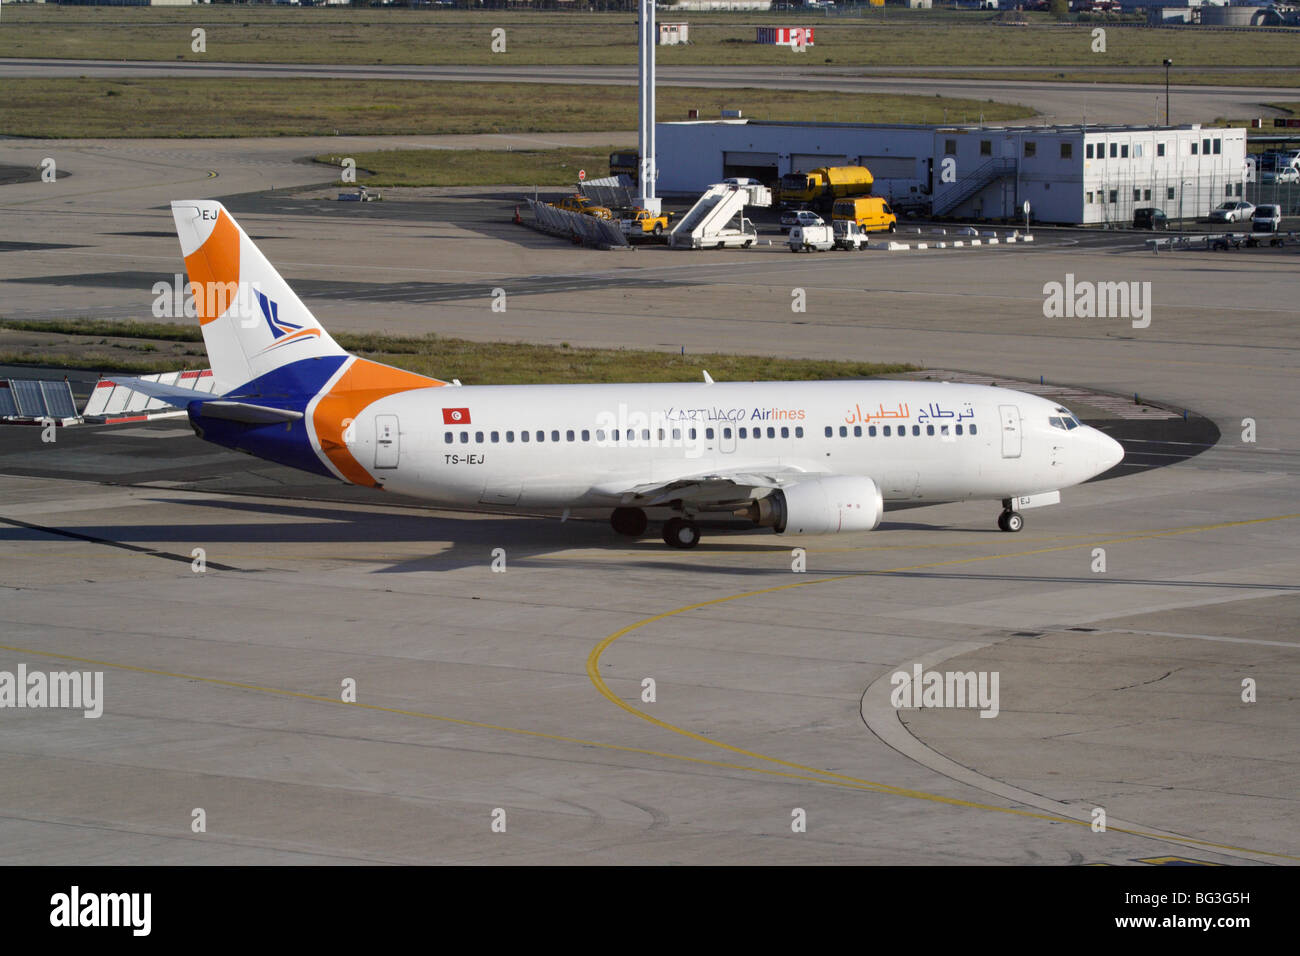 Karthago Airlines Boeing 737-300 airliner taxiing at Paris Orly Airport - Stock Image